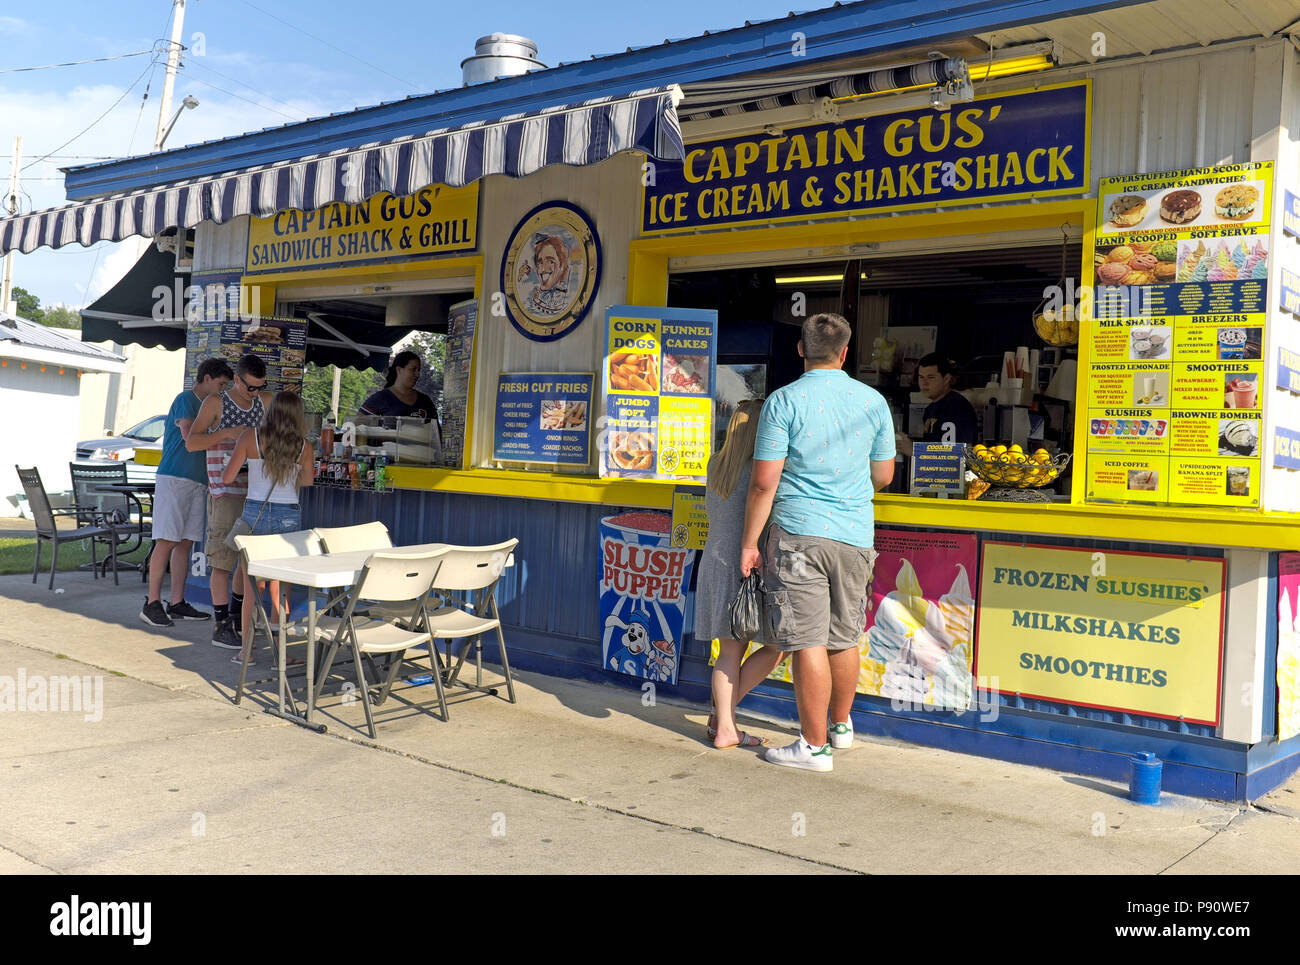 Captain Gus' Ice Cream and Shake Shack in the summer resort town of Geneva-on-the-Lake ordering and cooling off during the hot Northeast Ohio summer. - Stock Image